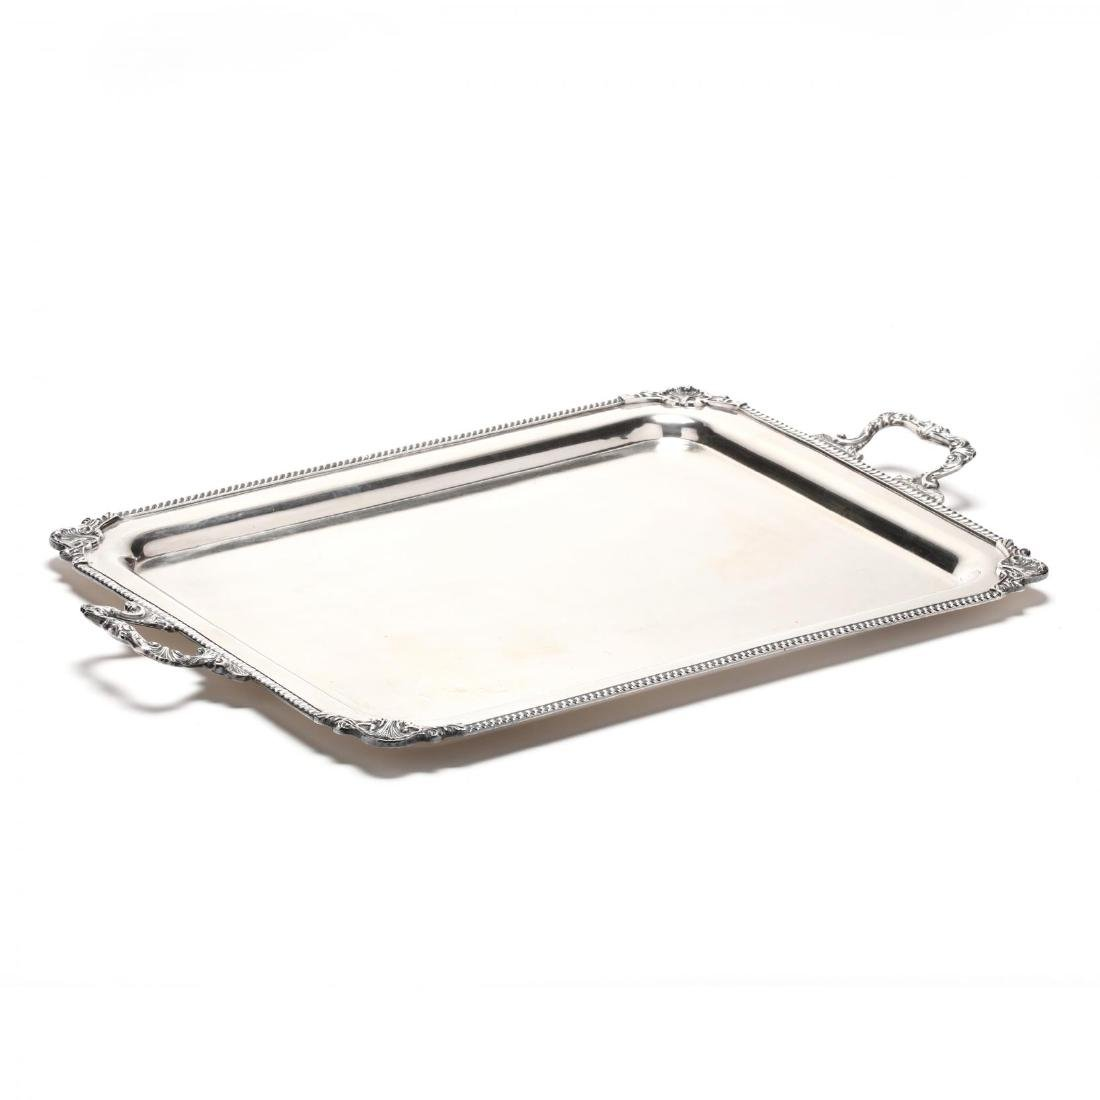 An American Sterling Silver Hostess Tray